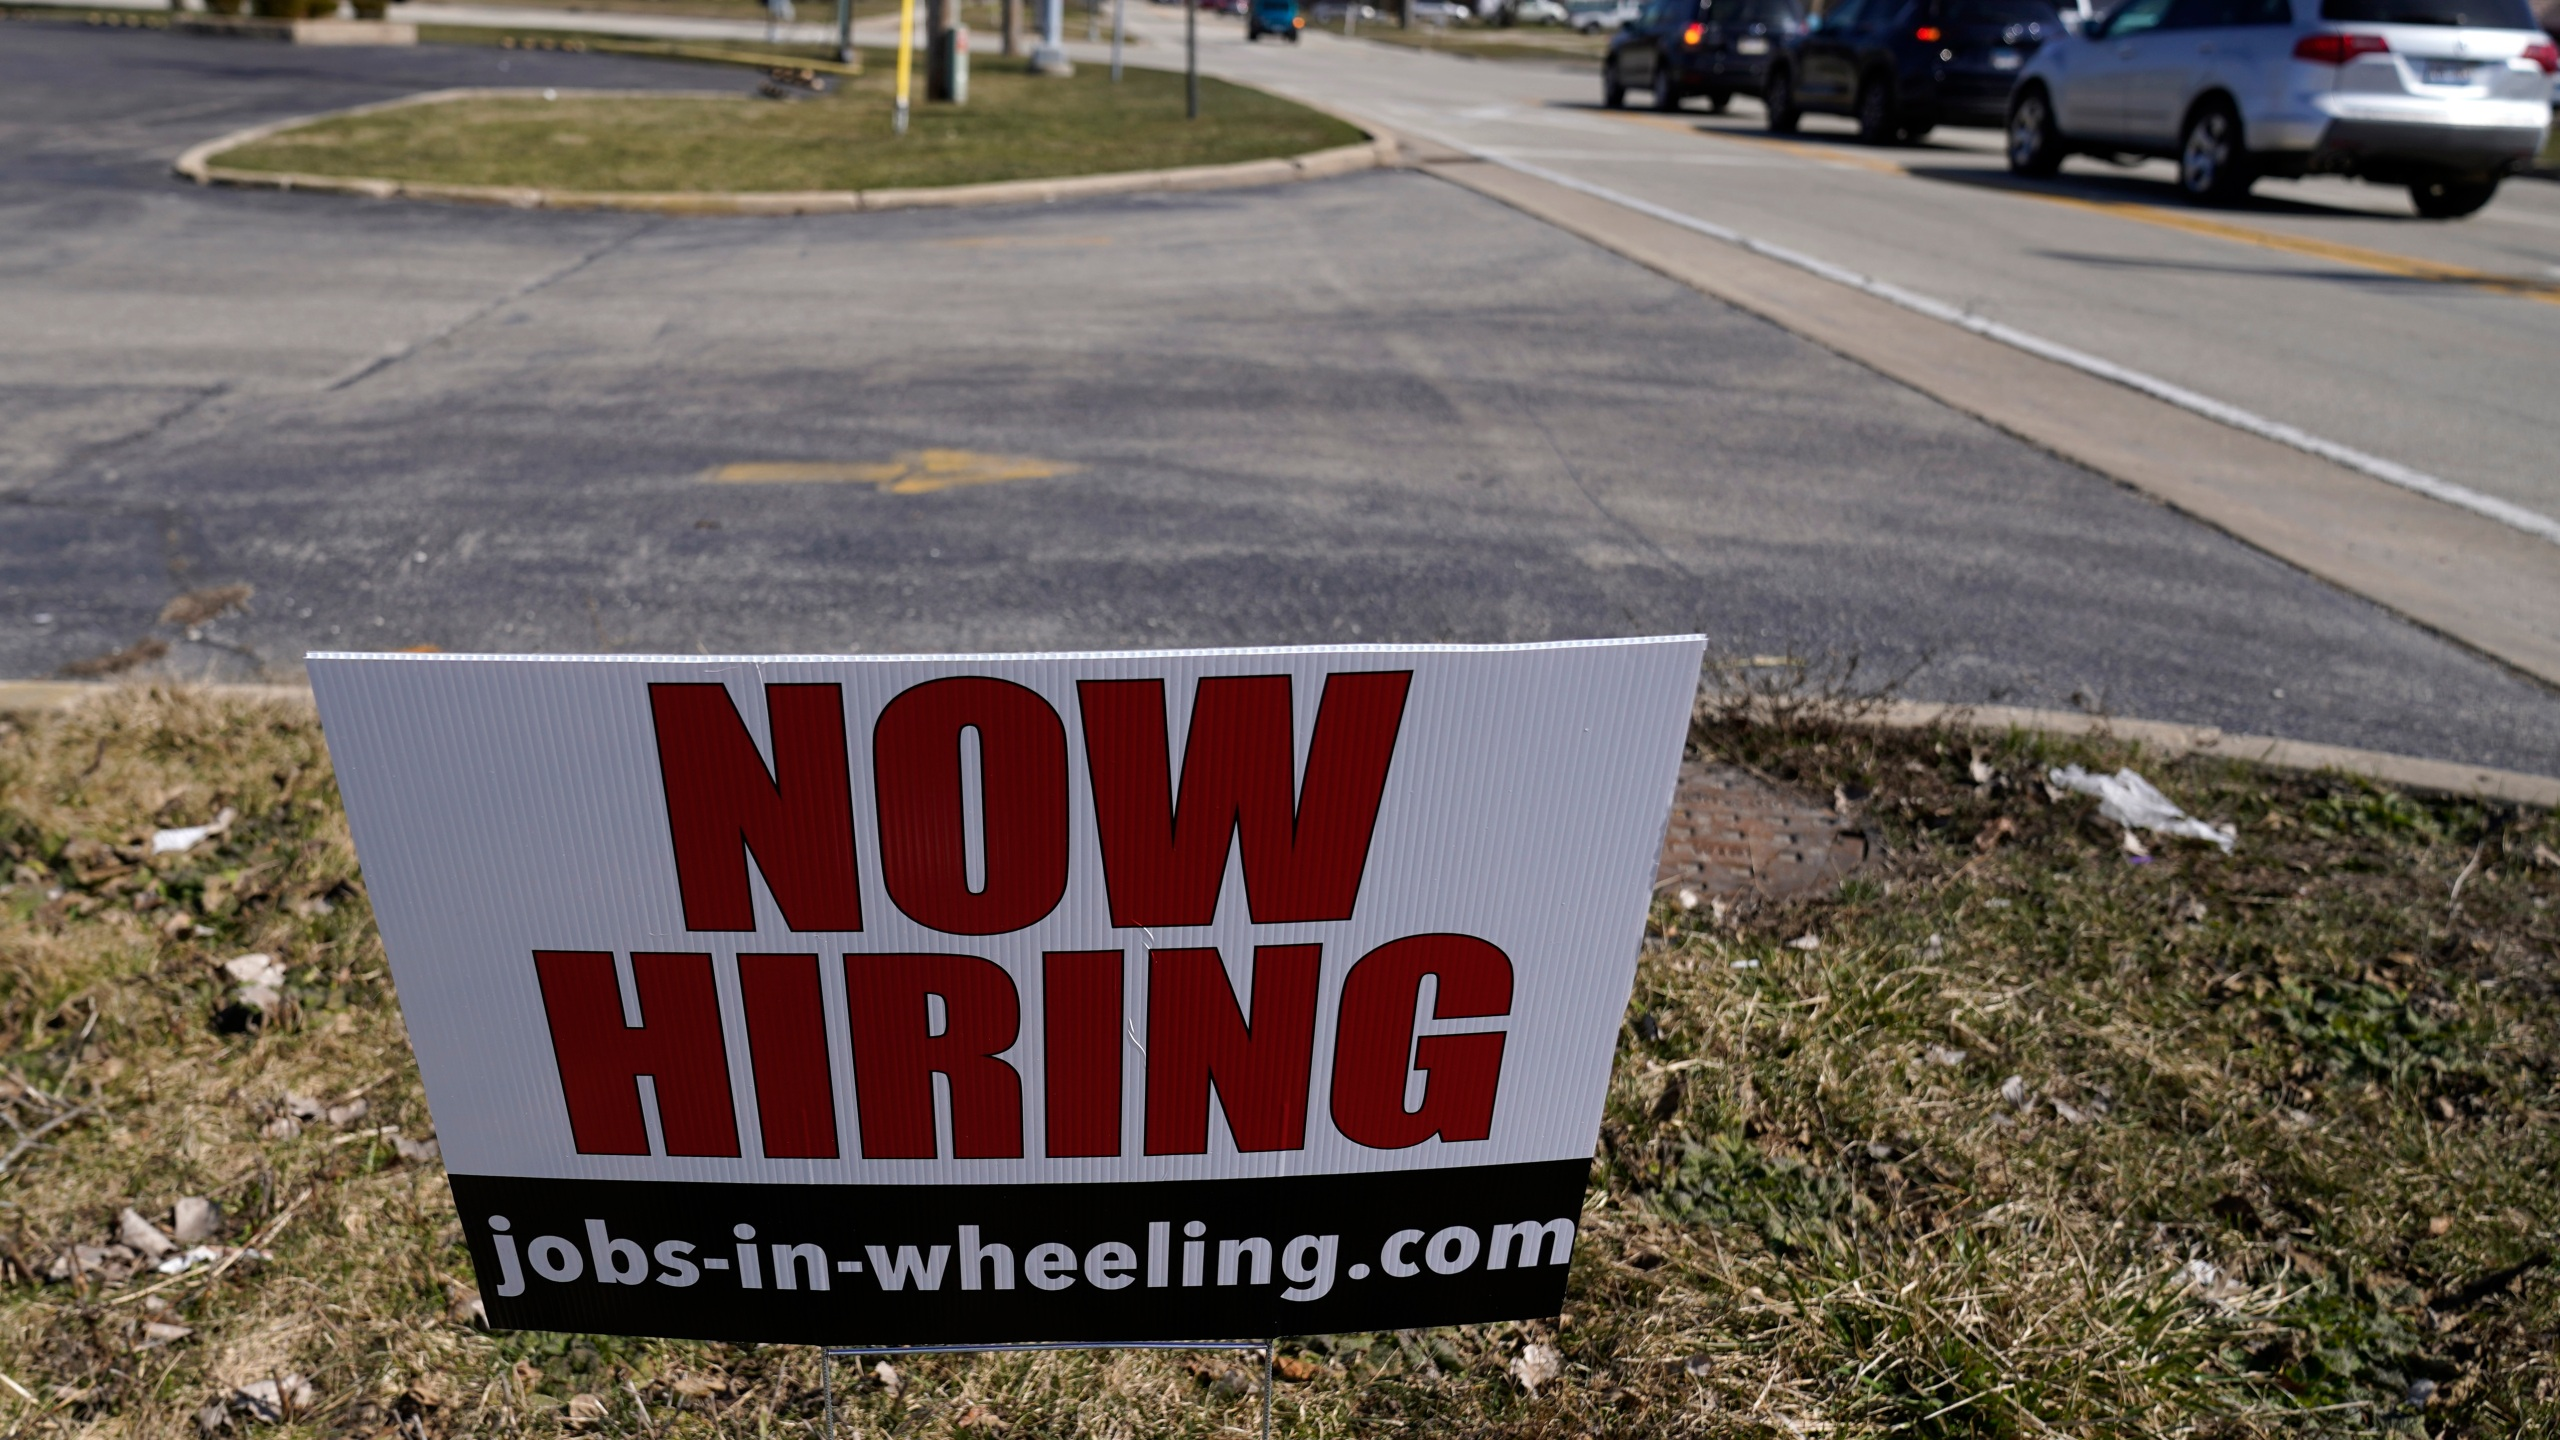 A hiring sign shows in Wheeling, Ill., Sunday, March 21, 2021. The number of Americans applying for unemployment aid fell last week to 547,000, a new low since the pandemic struck and a further encouraging sign that layoffs are slowing on the strength of an improving job market. The Labor Department said Thursday, April 22, that applications declined 39,000 from a revised 586,000 a week earlier. (AP Photo/Nam Y. Huh)